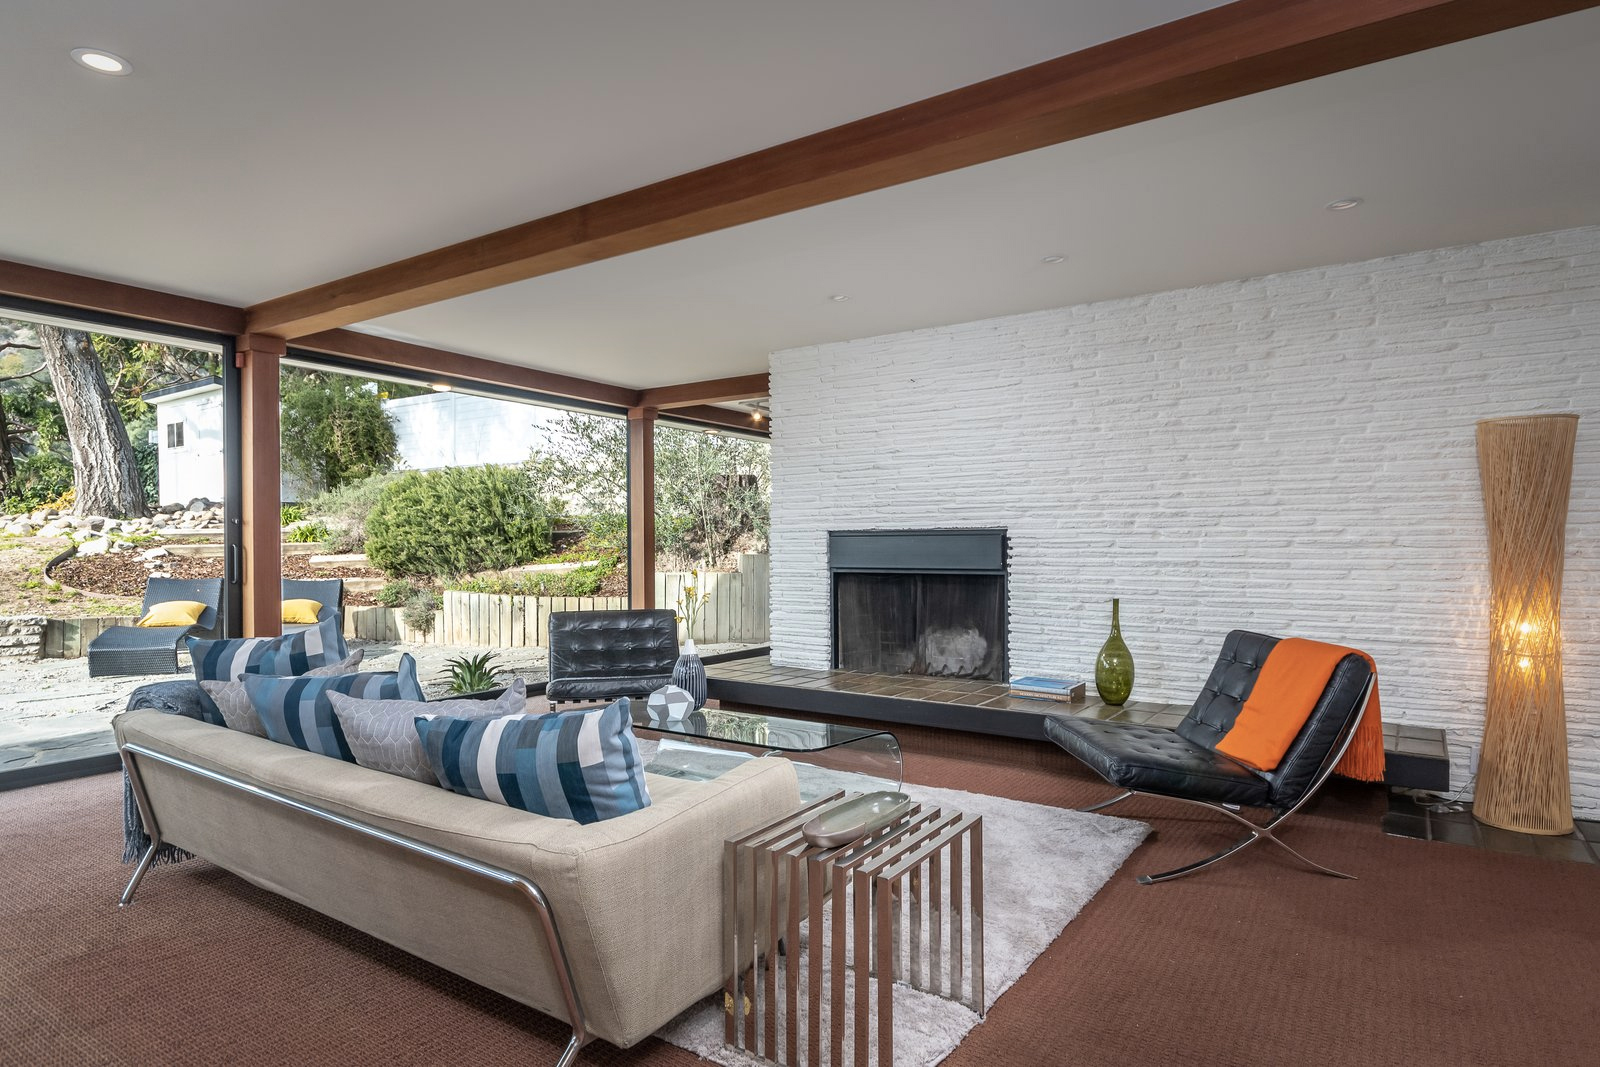 Pierre Koenig's experimental Squire House is for sale in California